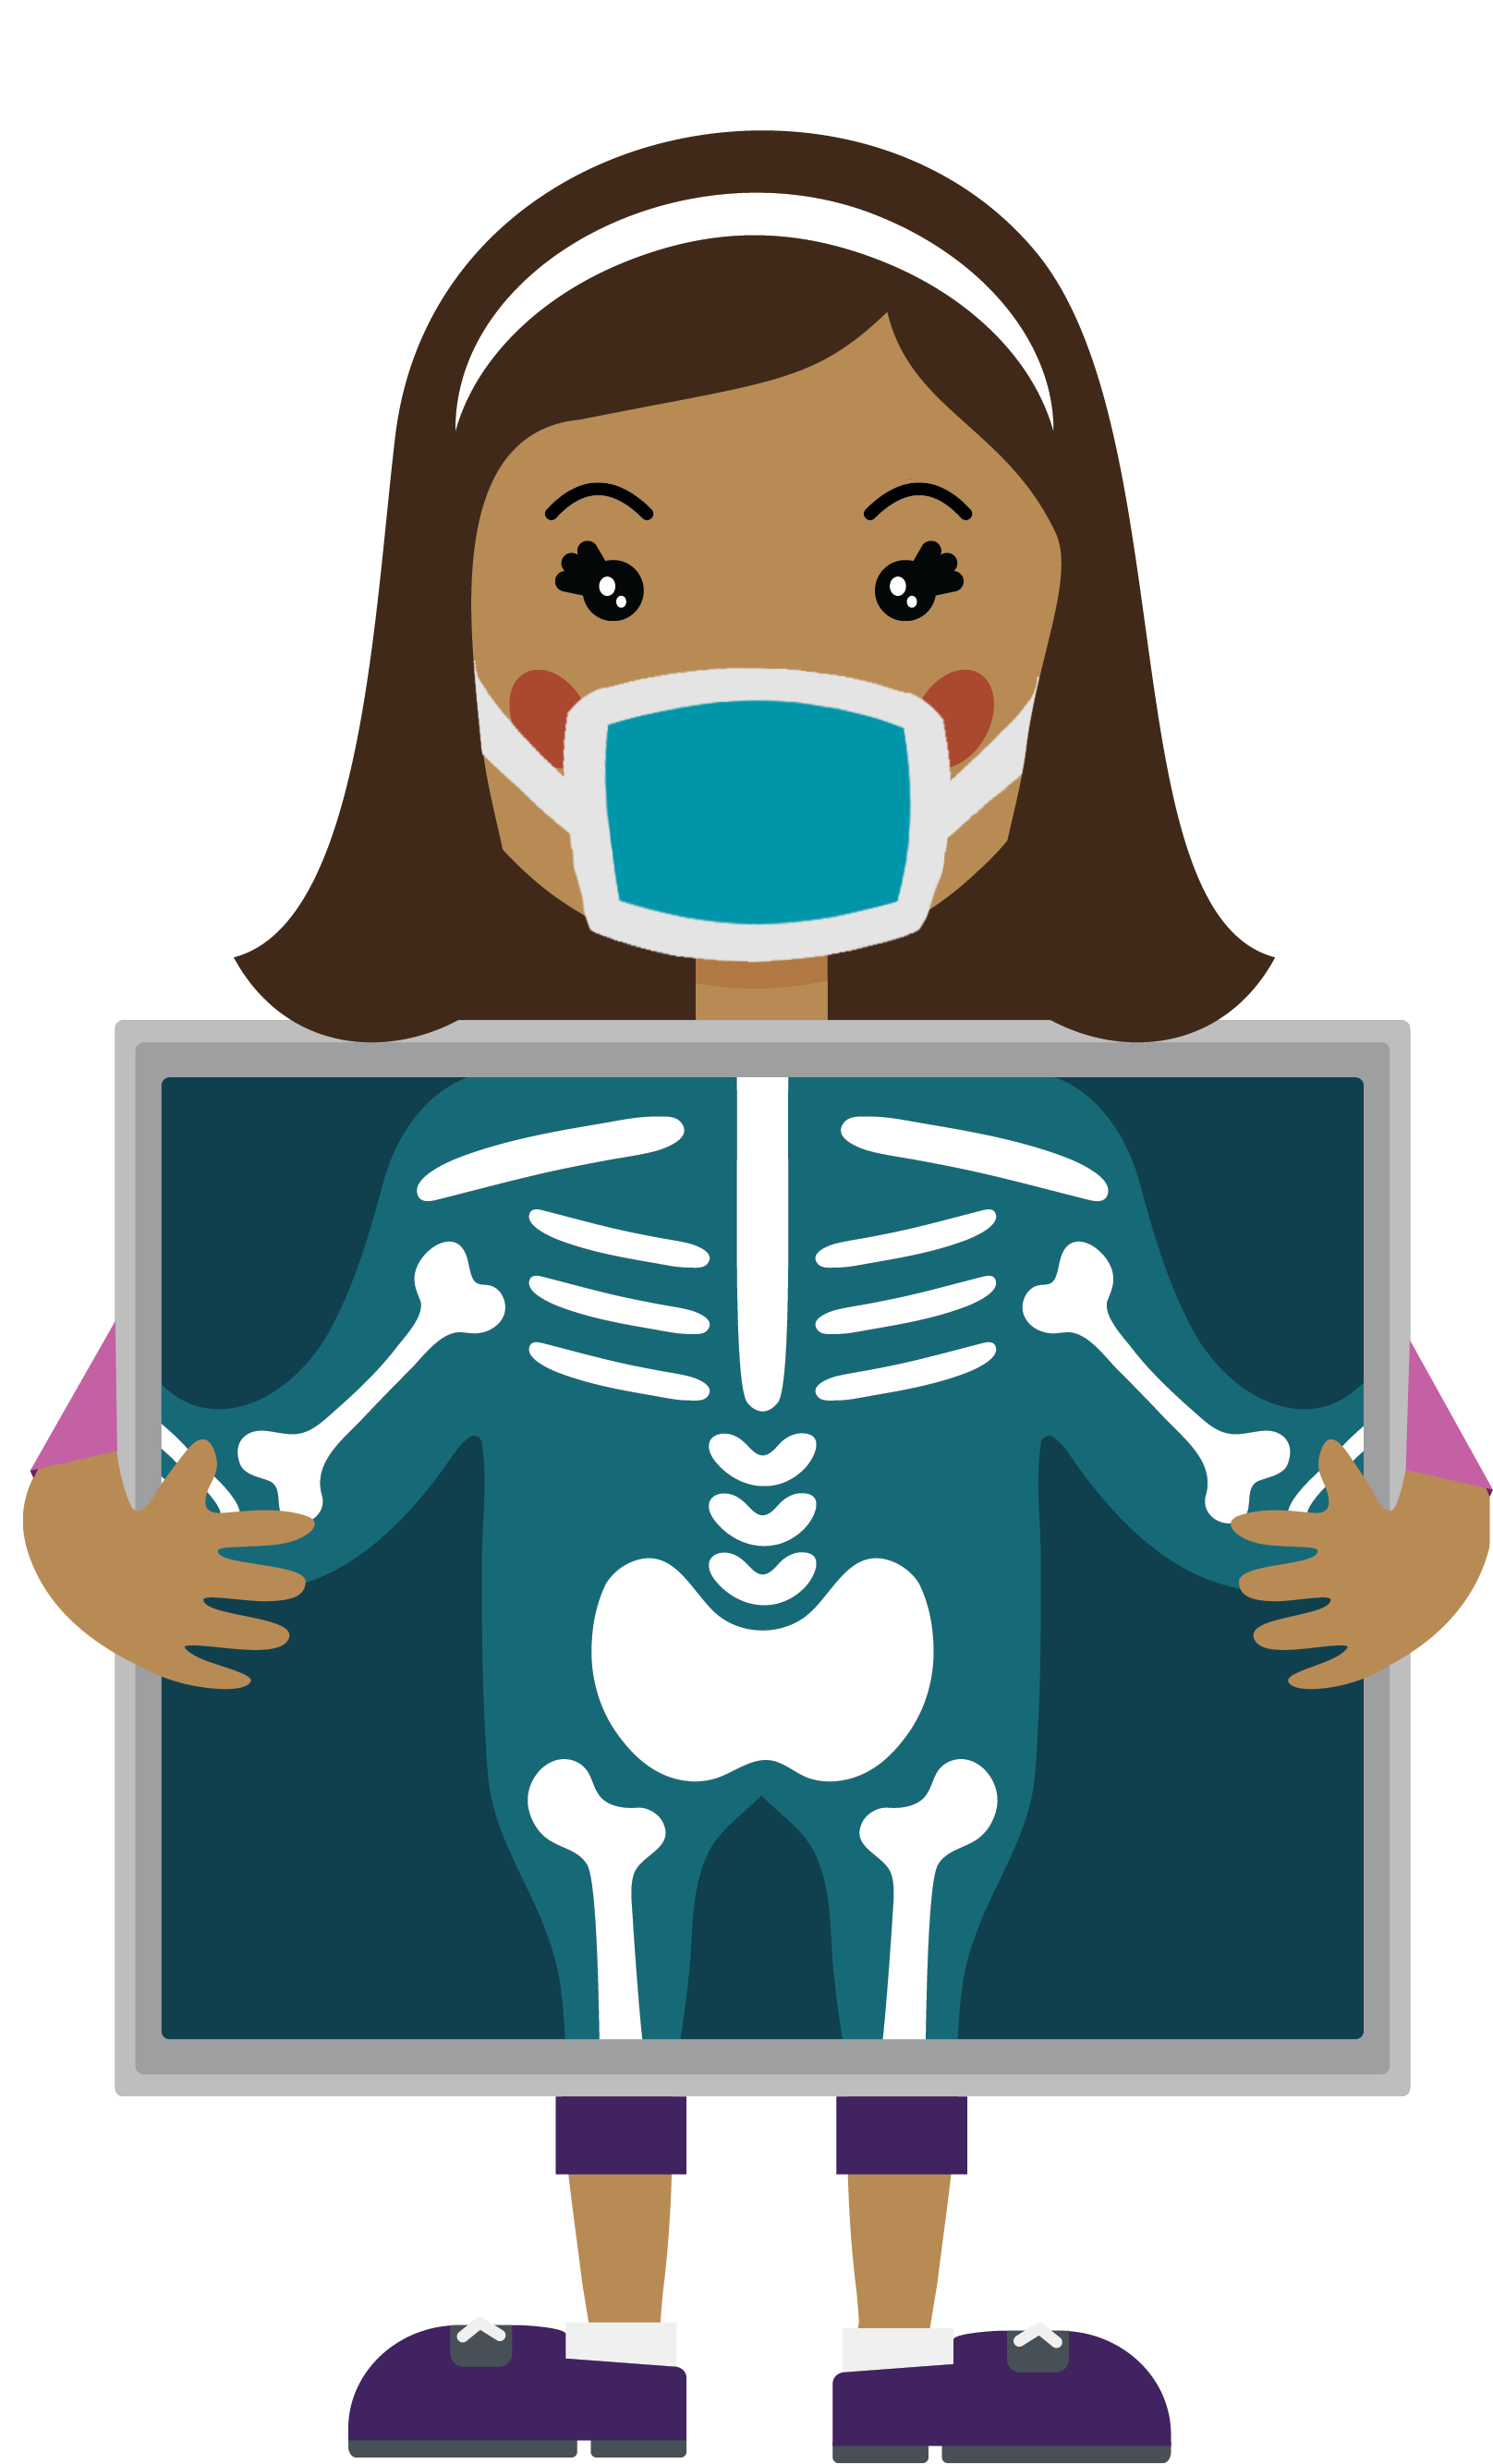 cartoon character holding x-ray with face mask on